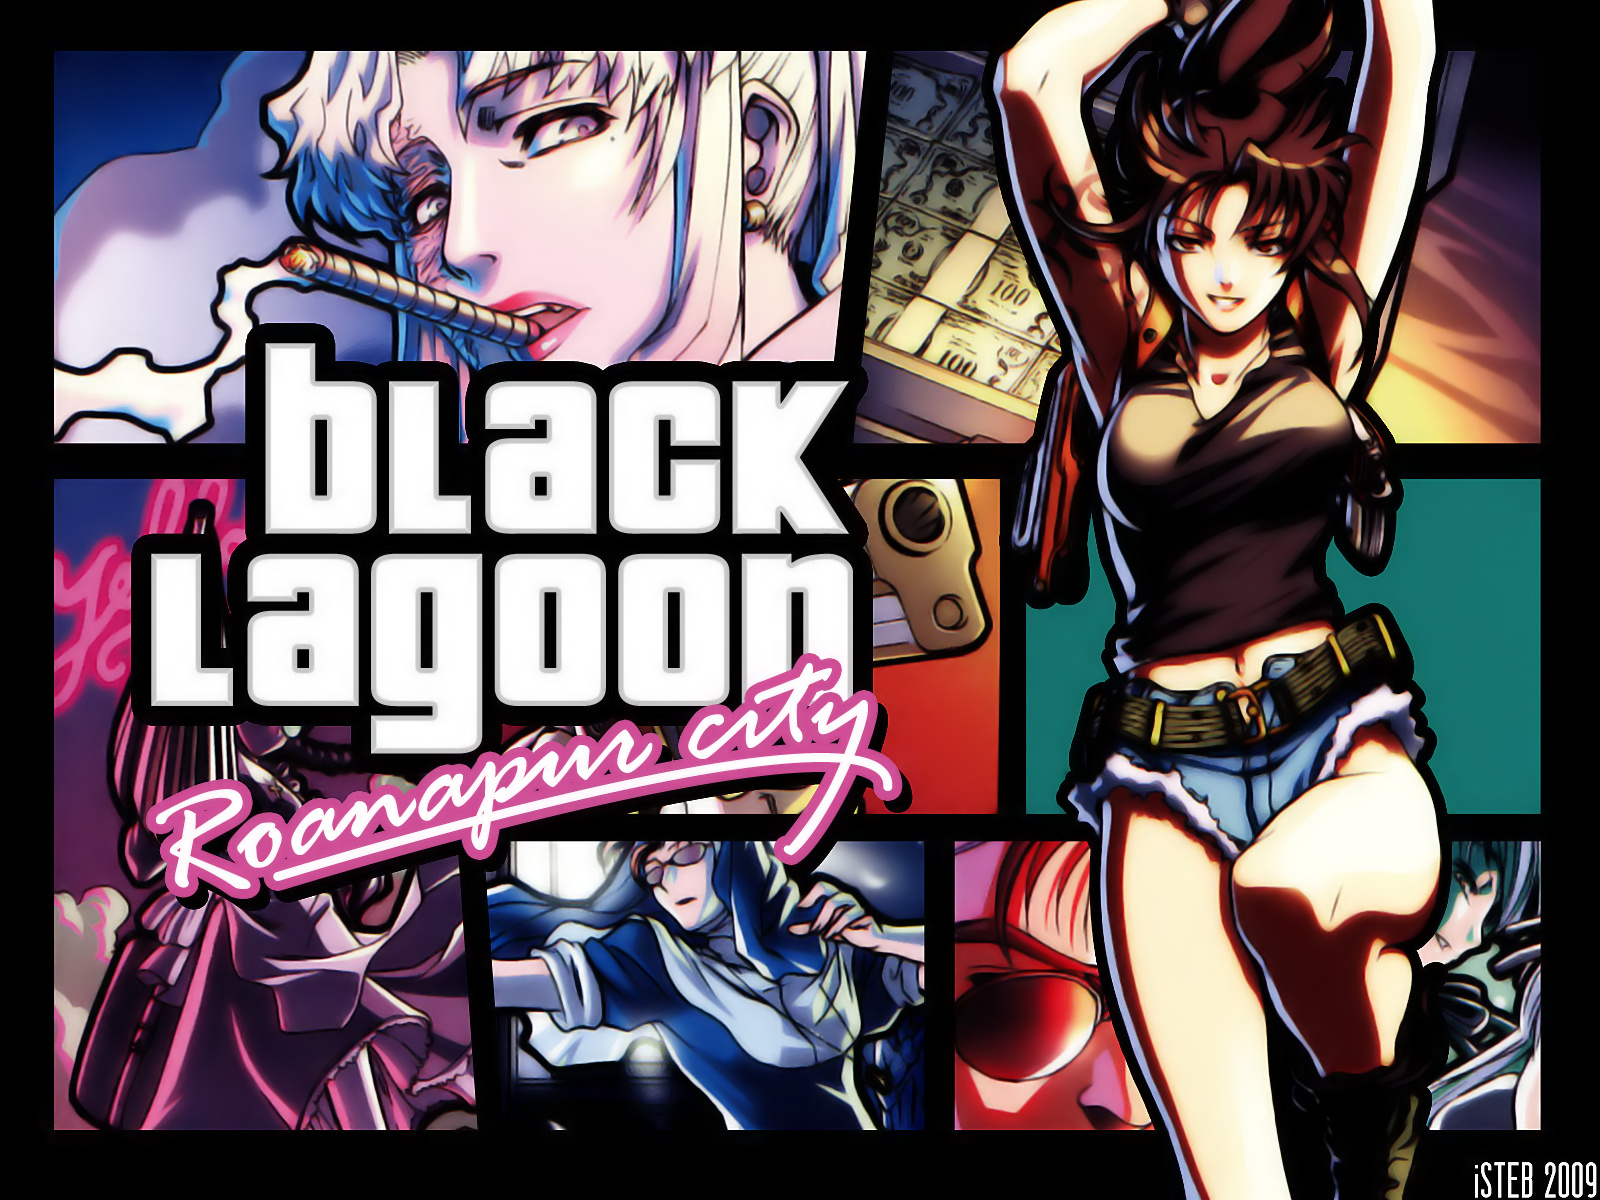 Anime 1600x1200 Black Lagoon Grand Theft Auto Vice City parody girls with guns women with umbrella inked girls maid outfit big boobs jean shorts bare shoulders black tops long hair smoking ponytail 2D anime girls smiling thighs thick thigh thigh high boots Revy Roberta Balalaika Eda underboob revolver no bra black hair brunette blond hair open mouth looking at viewer looking away brown eyes jumping scars messy hair nun's habit cigars fan art belly button curvy anime